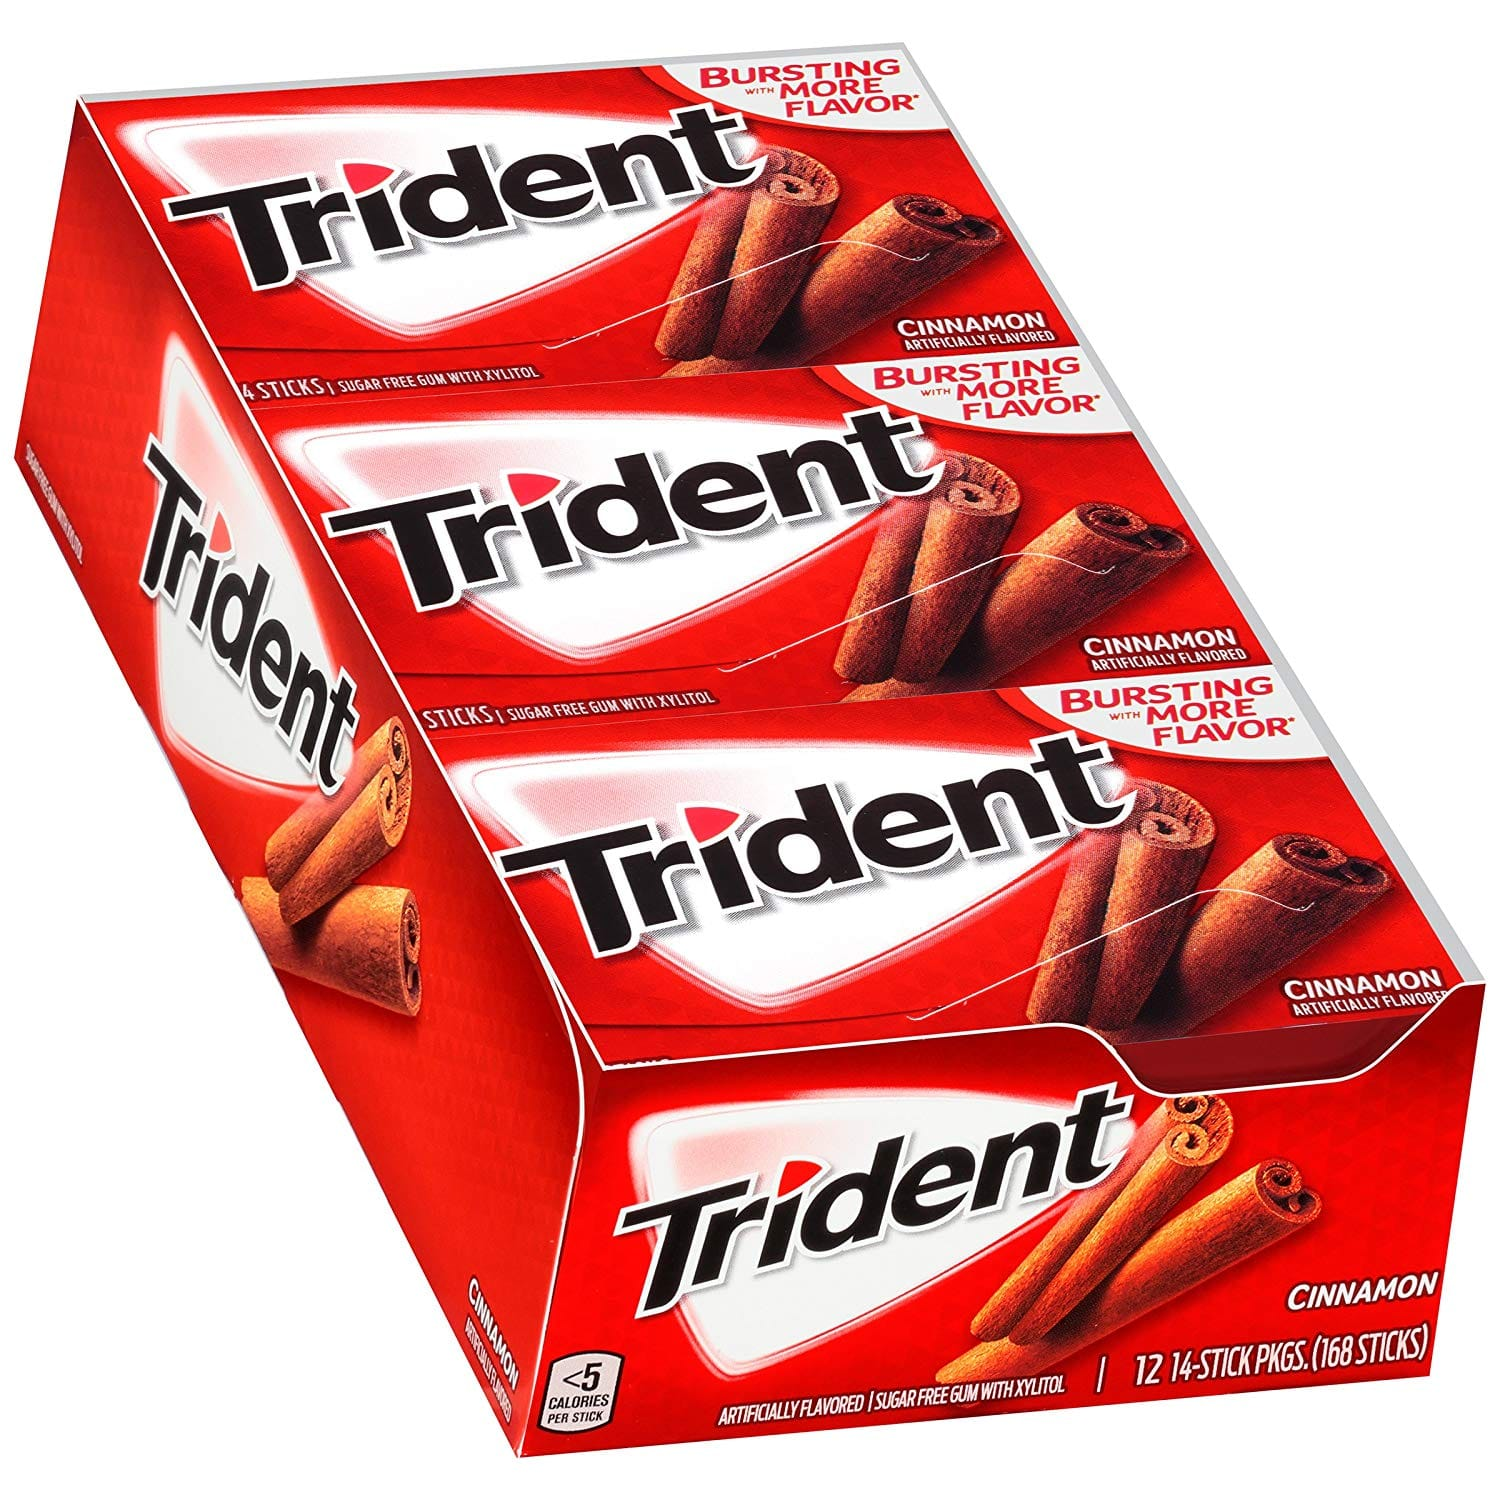 Trident Cinnamon Sugar Free Gum - with Xylitol - 12 Packs (168 Pieces Total) $6.38 with s/s